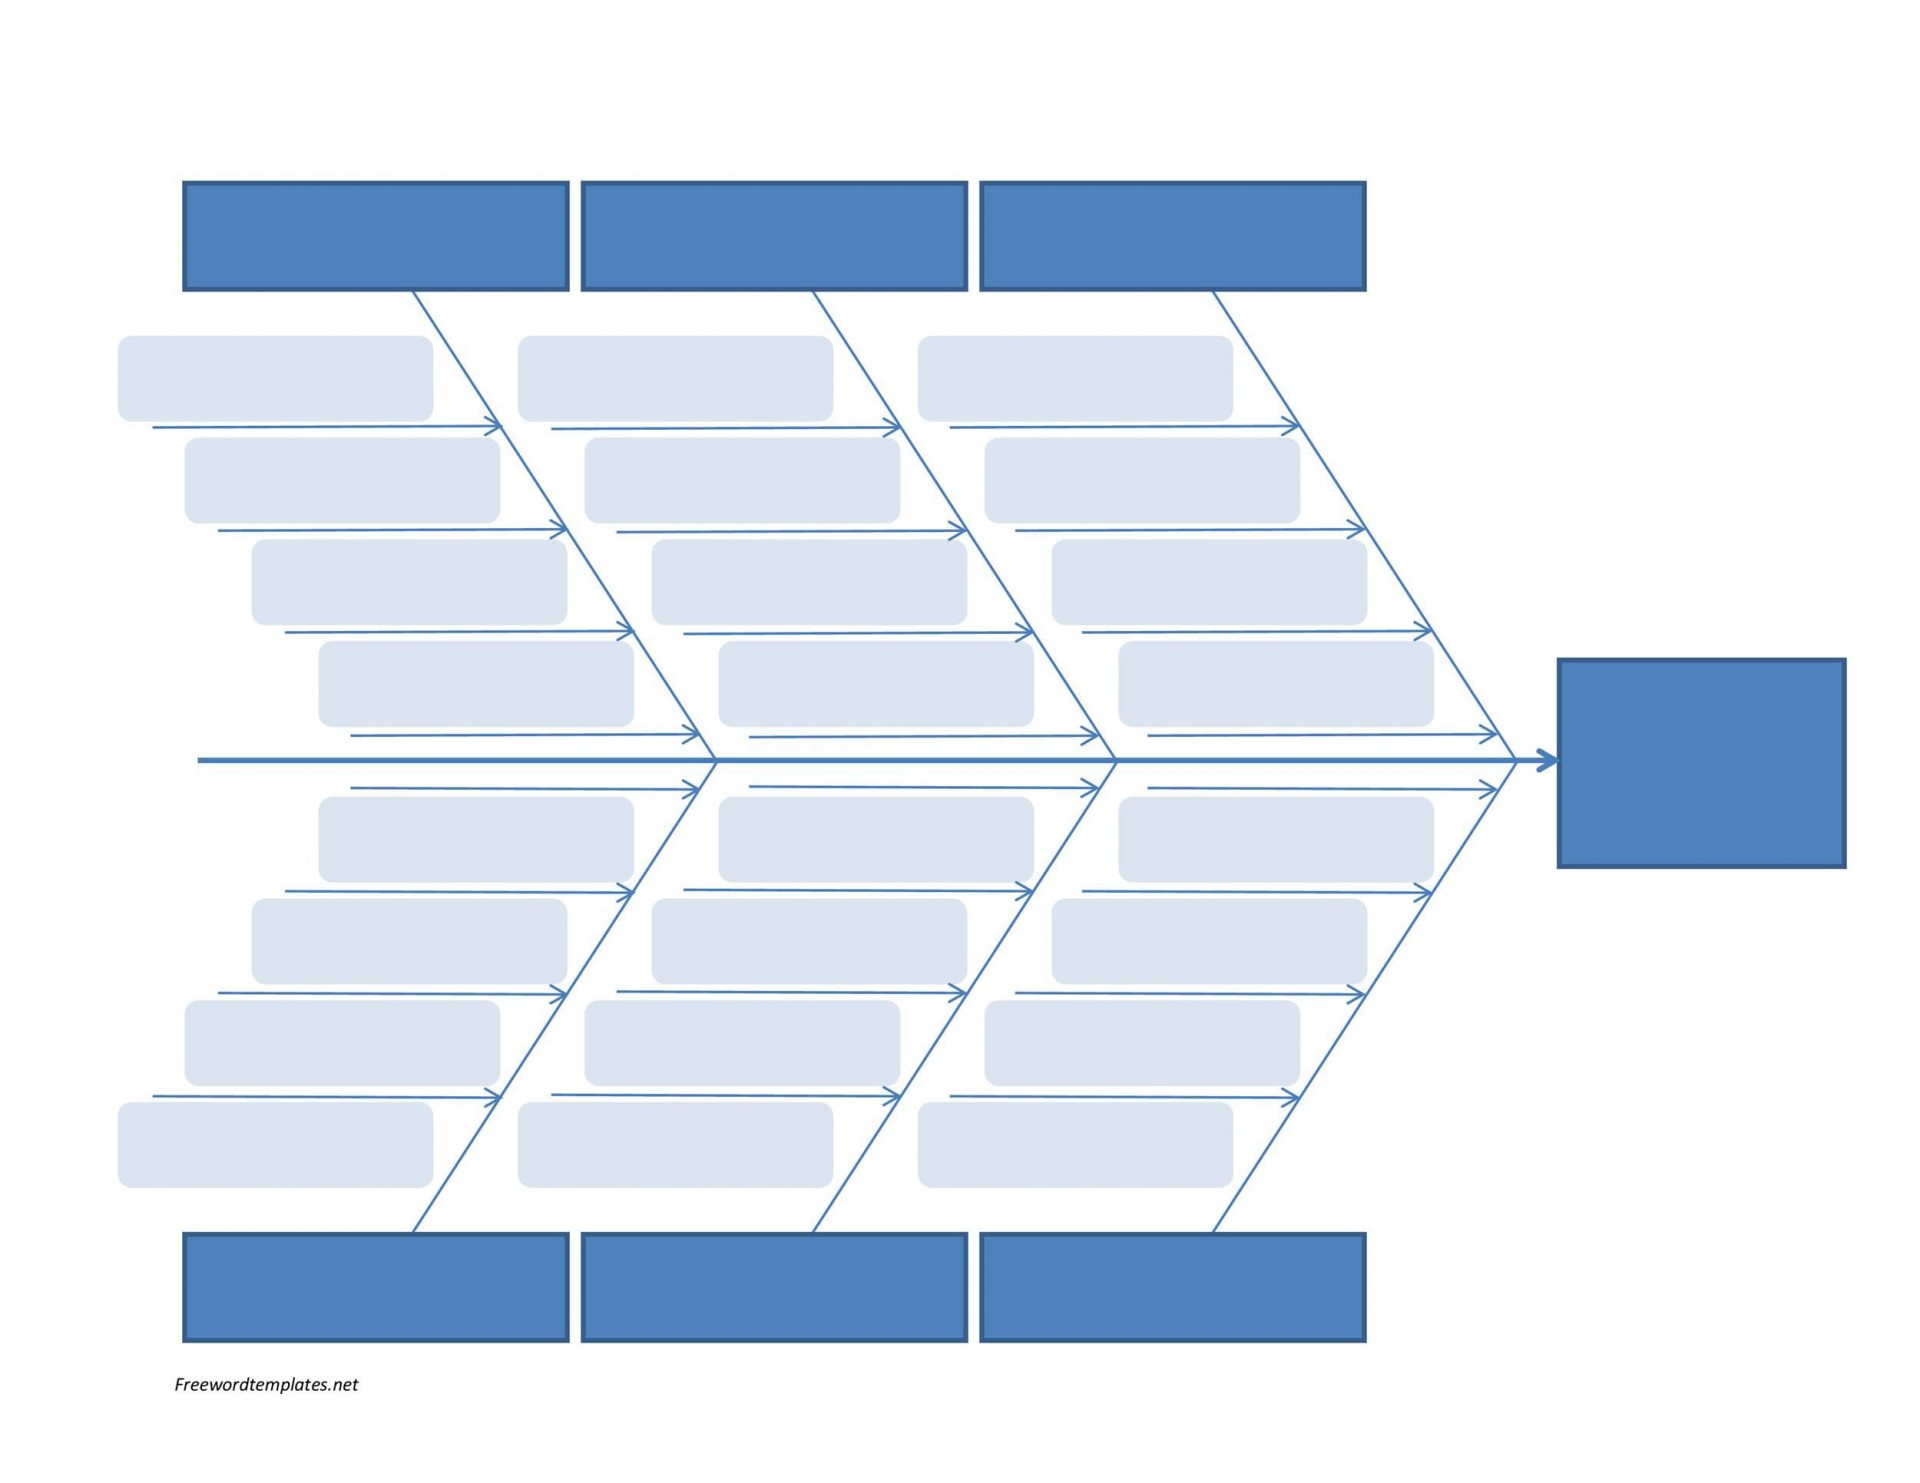 007 Shocking Blank Fishbone Diagram Template Image  Downloadable Word Pdf1920